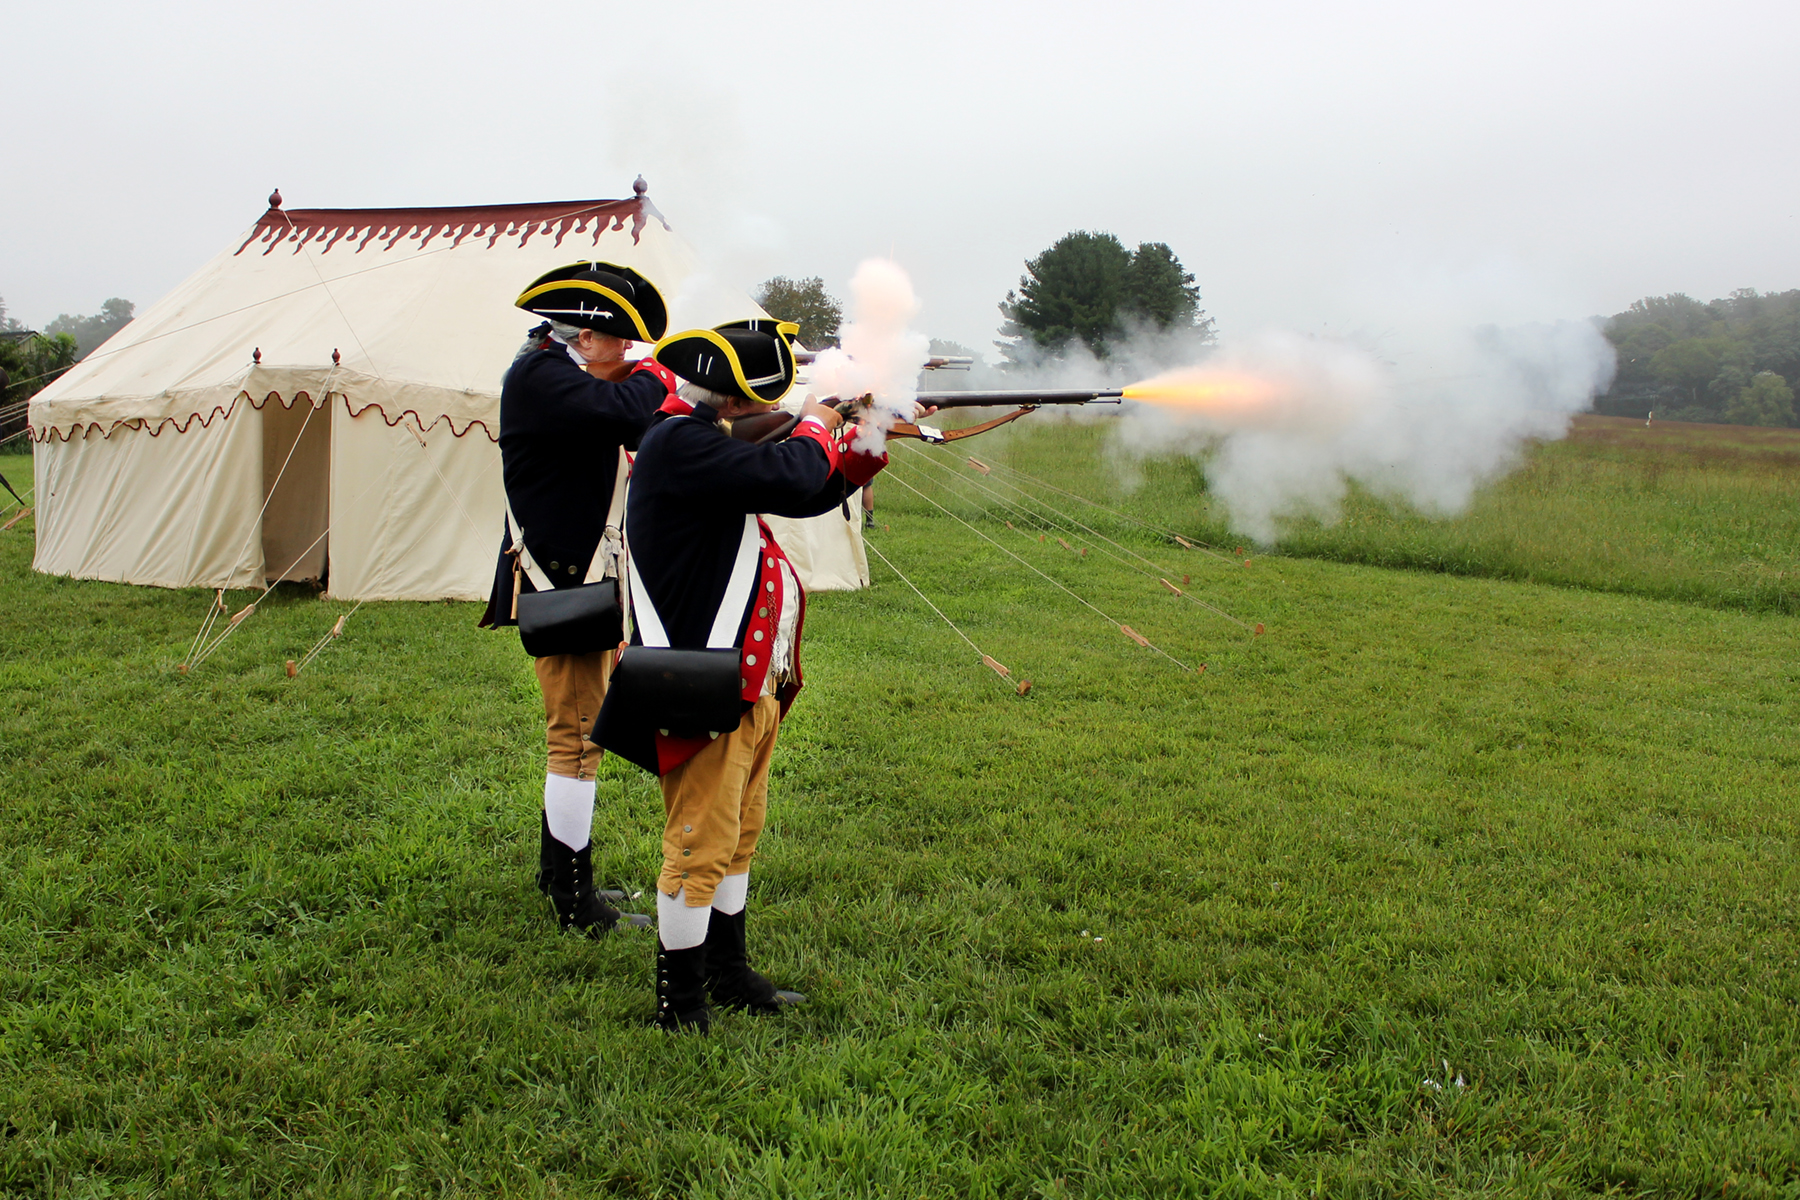 Reenactors from the 1st Delaware Regiment firing off a few rounds from their muskets, with a replica of George Washington's tent in the background, courtesy of the Museum of the American Revolution.